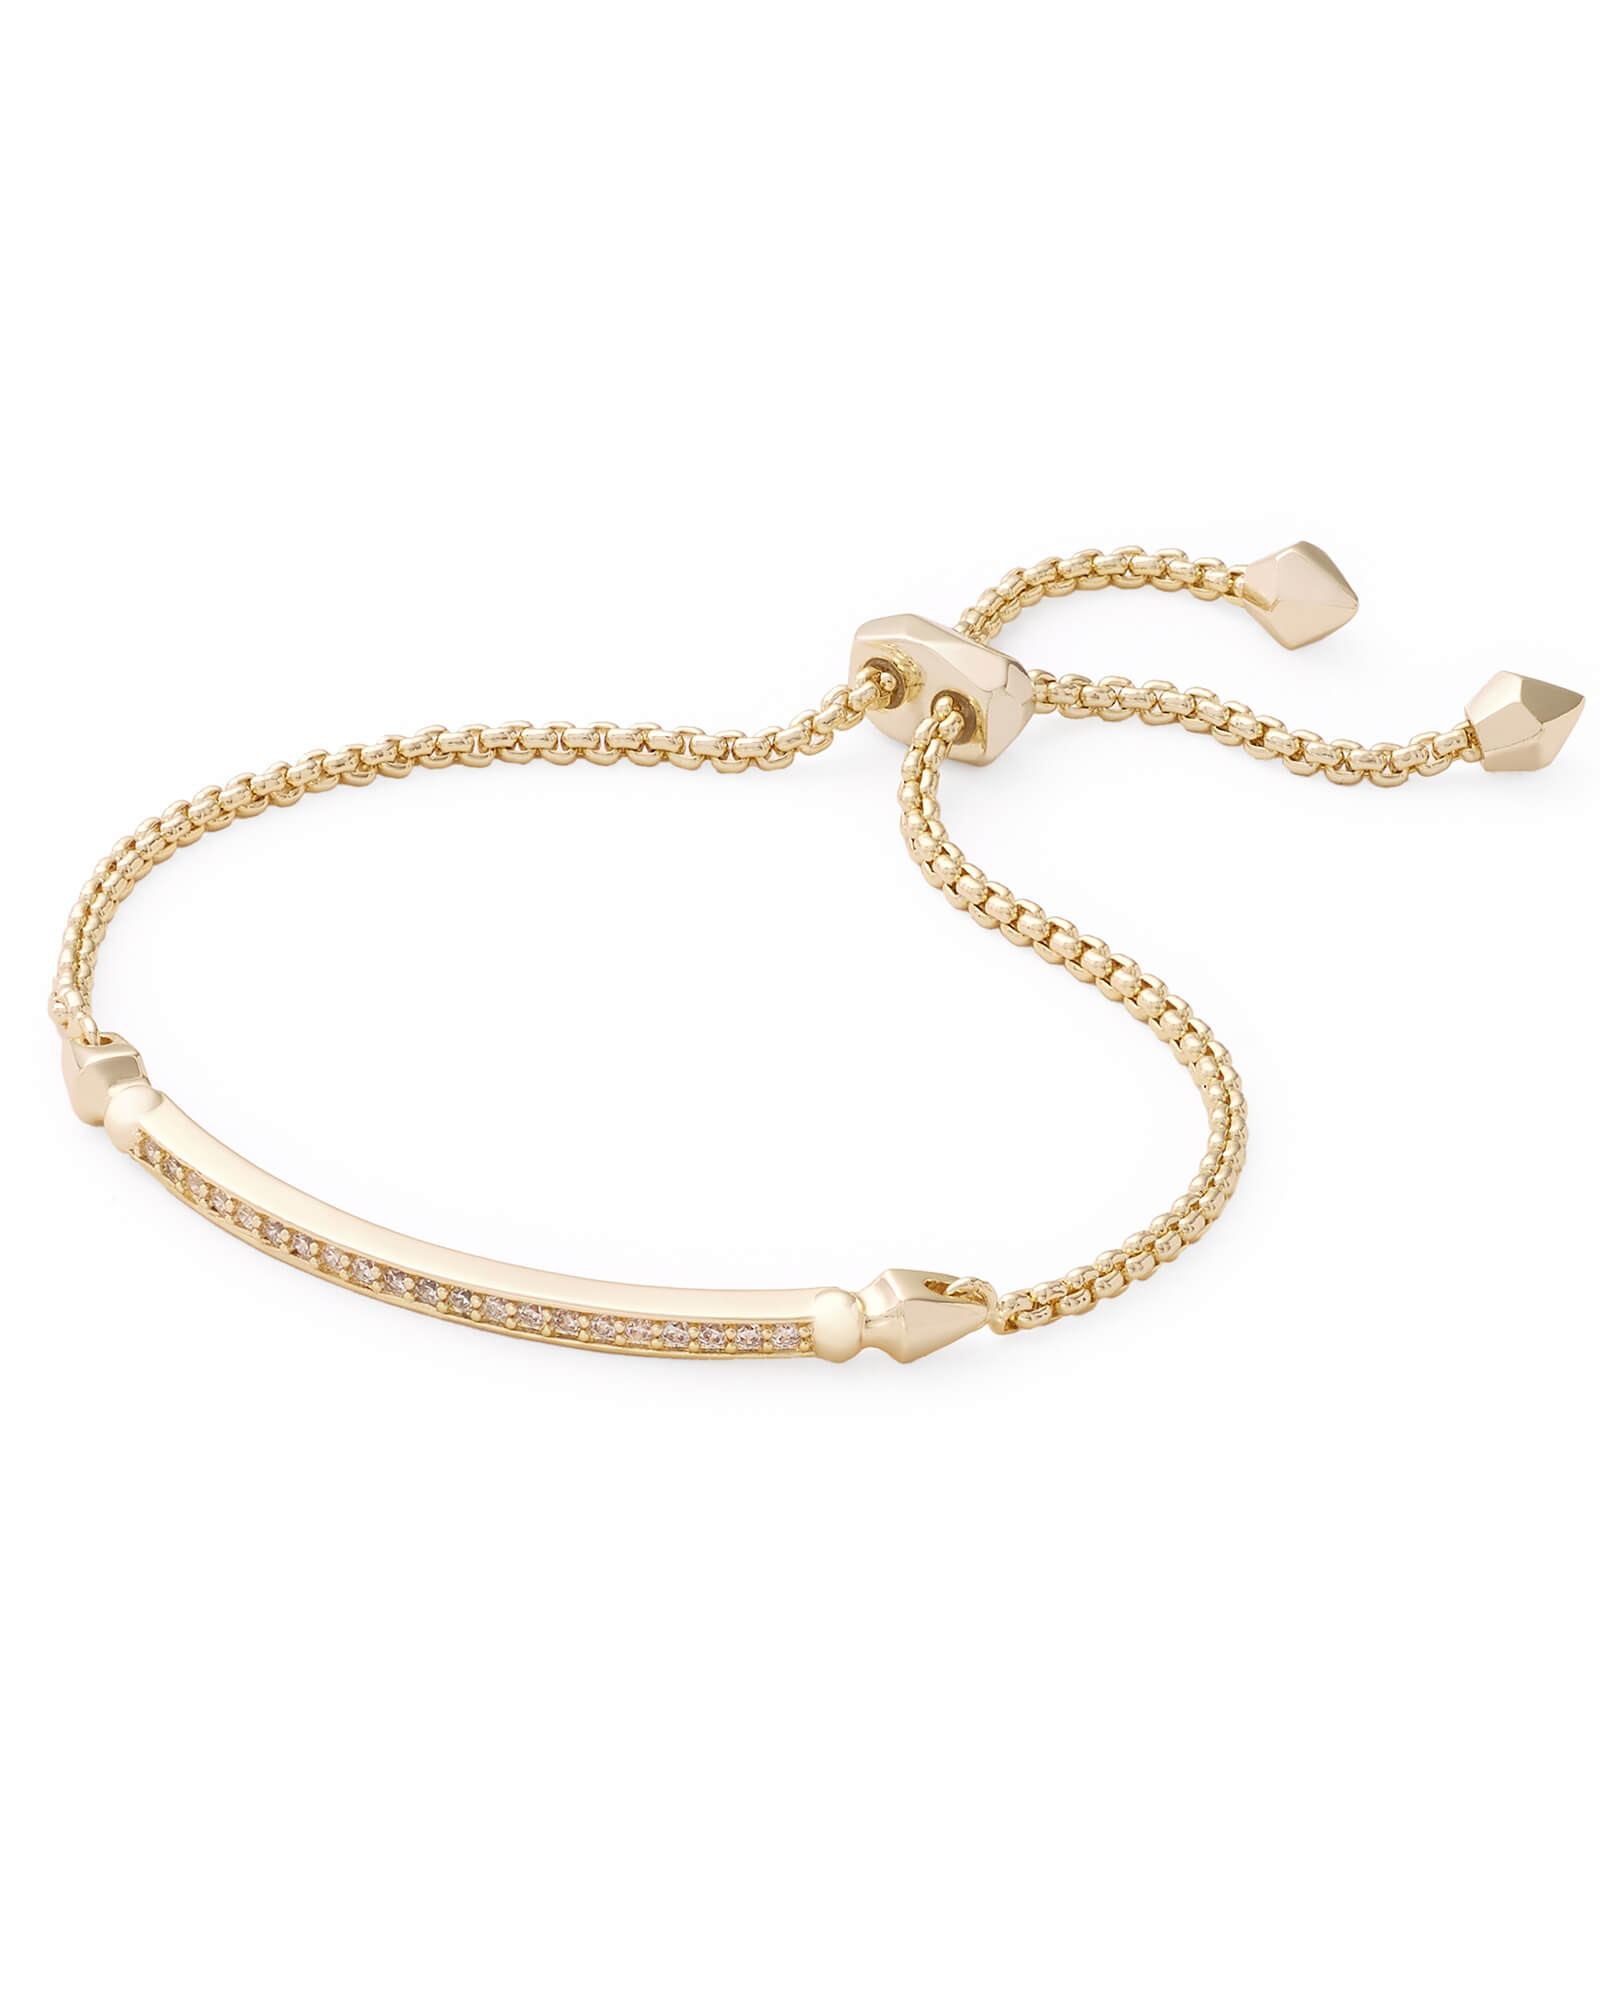 Ott Adjustable Chain Bracelet in Gold